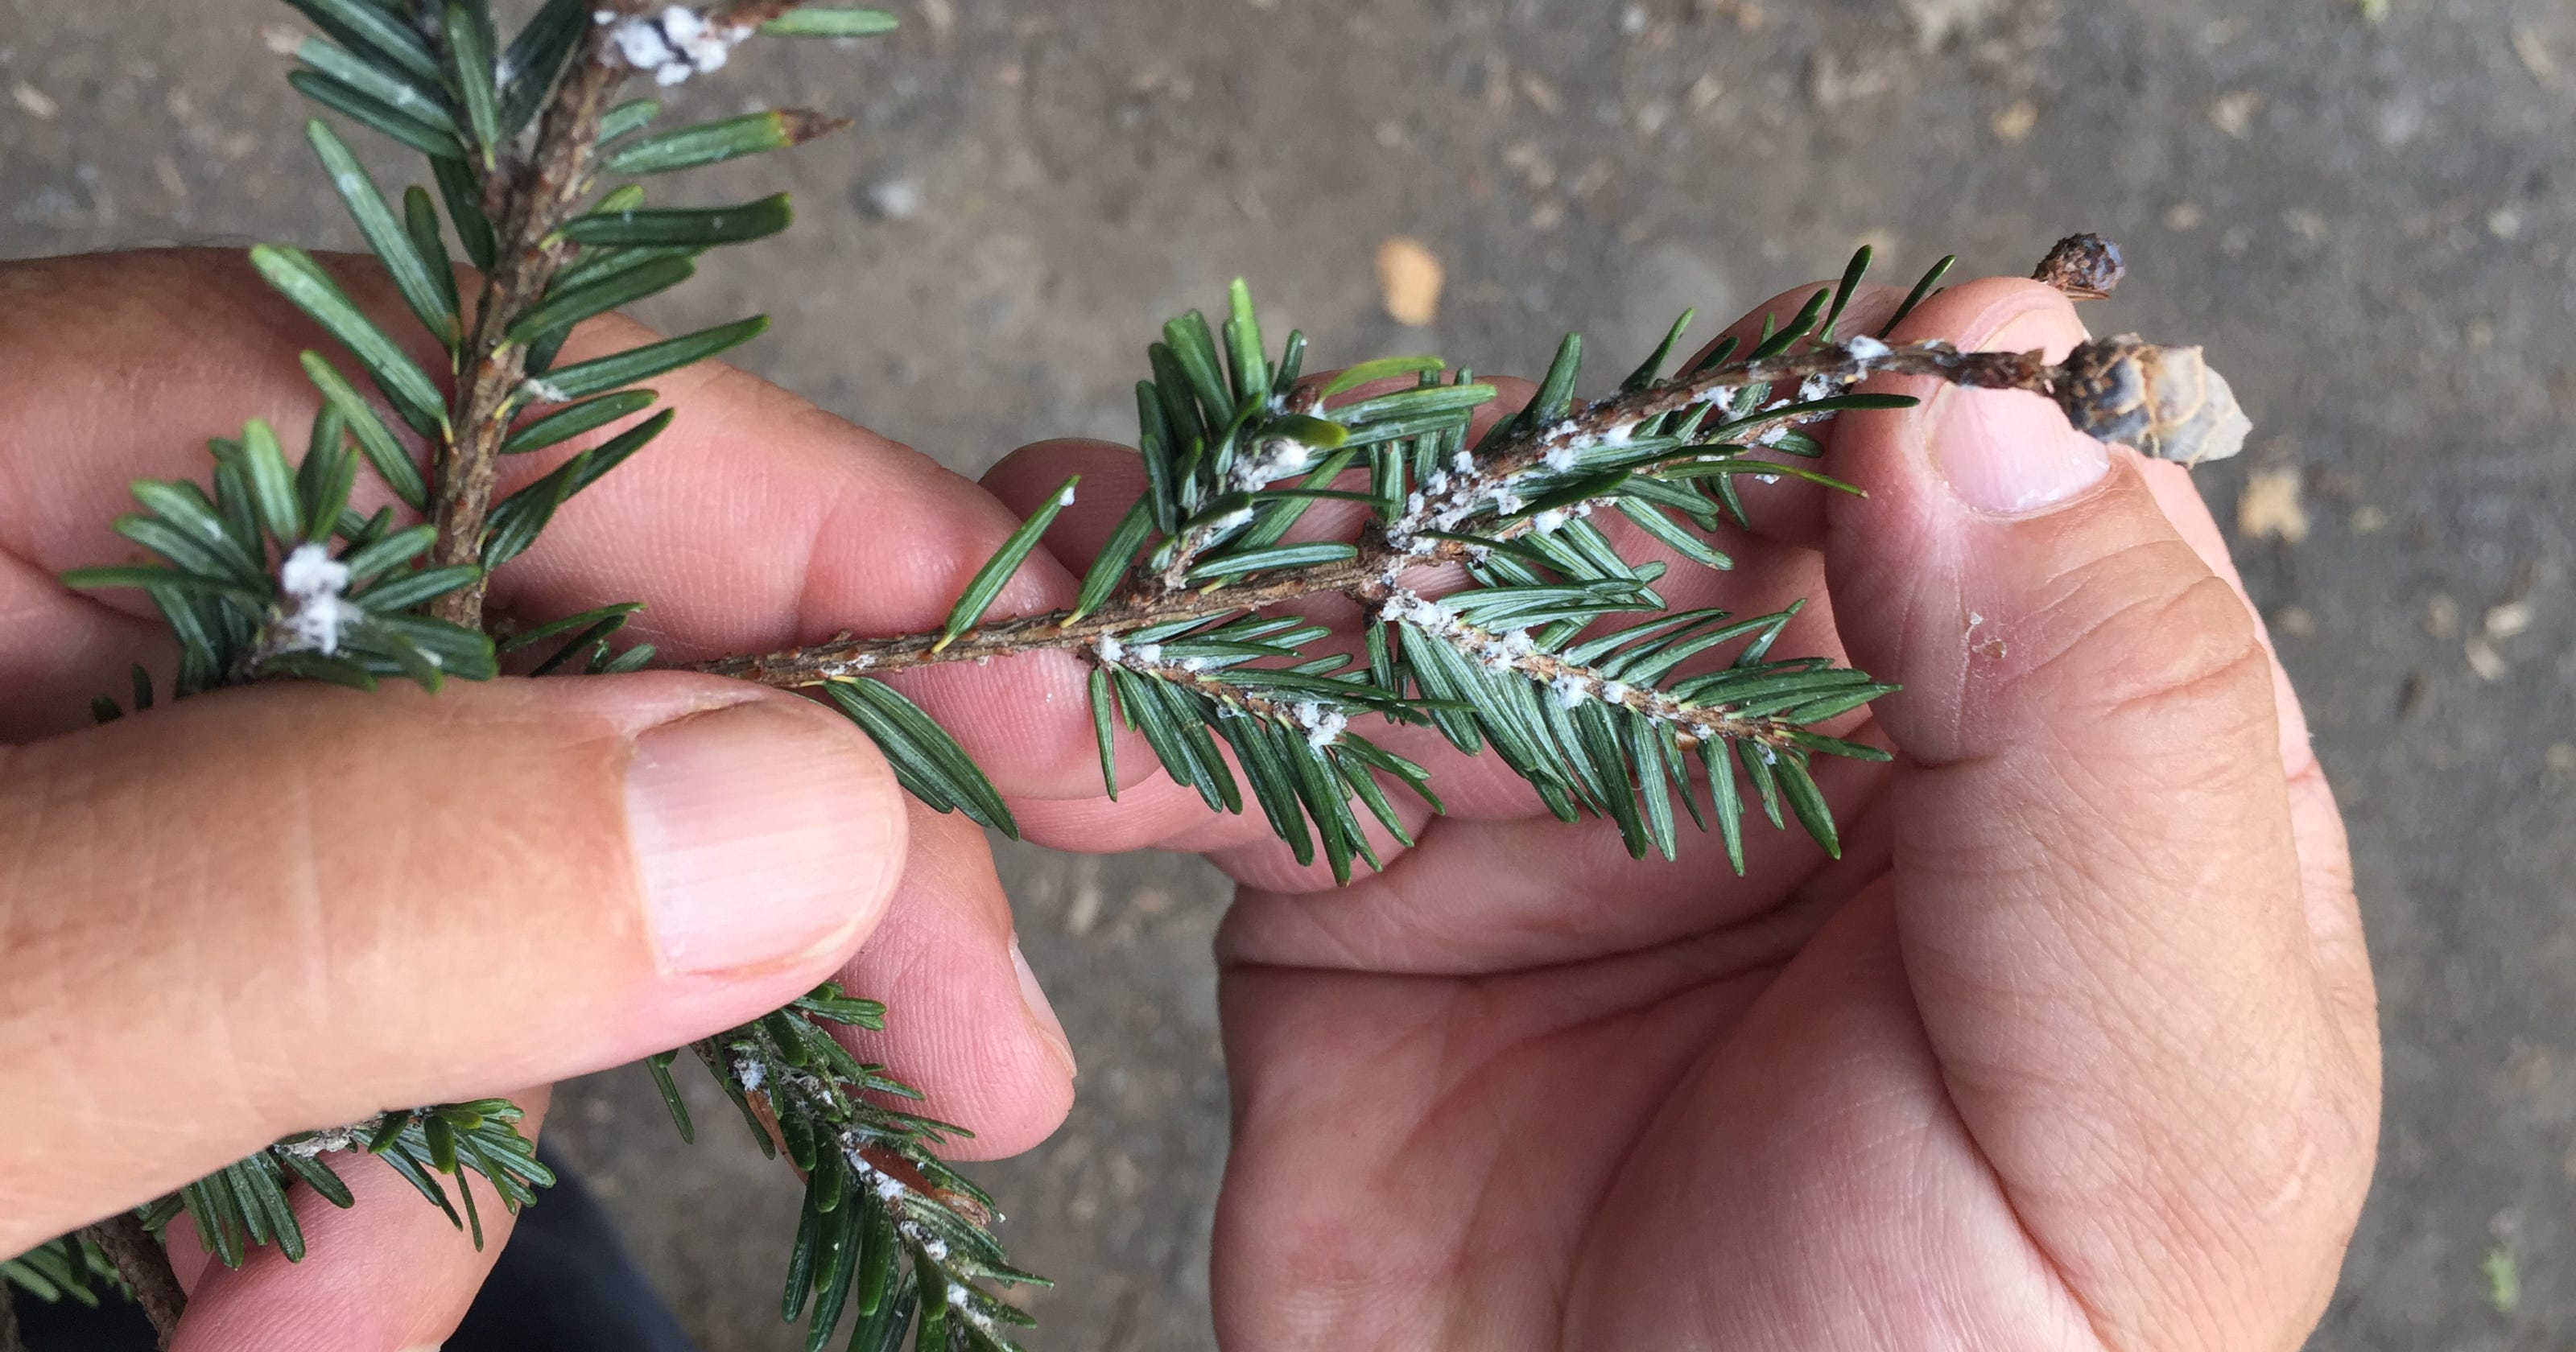 Western NY trees under attack from growing list of invasive